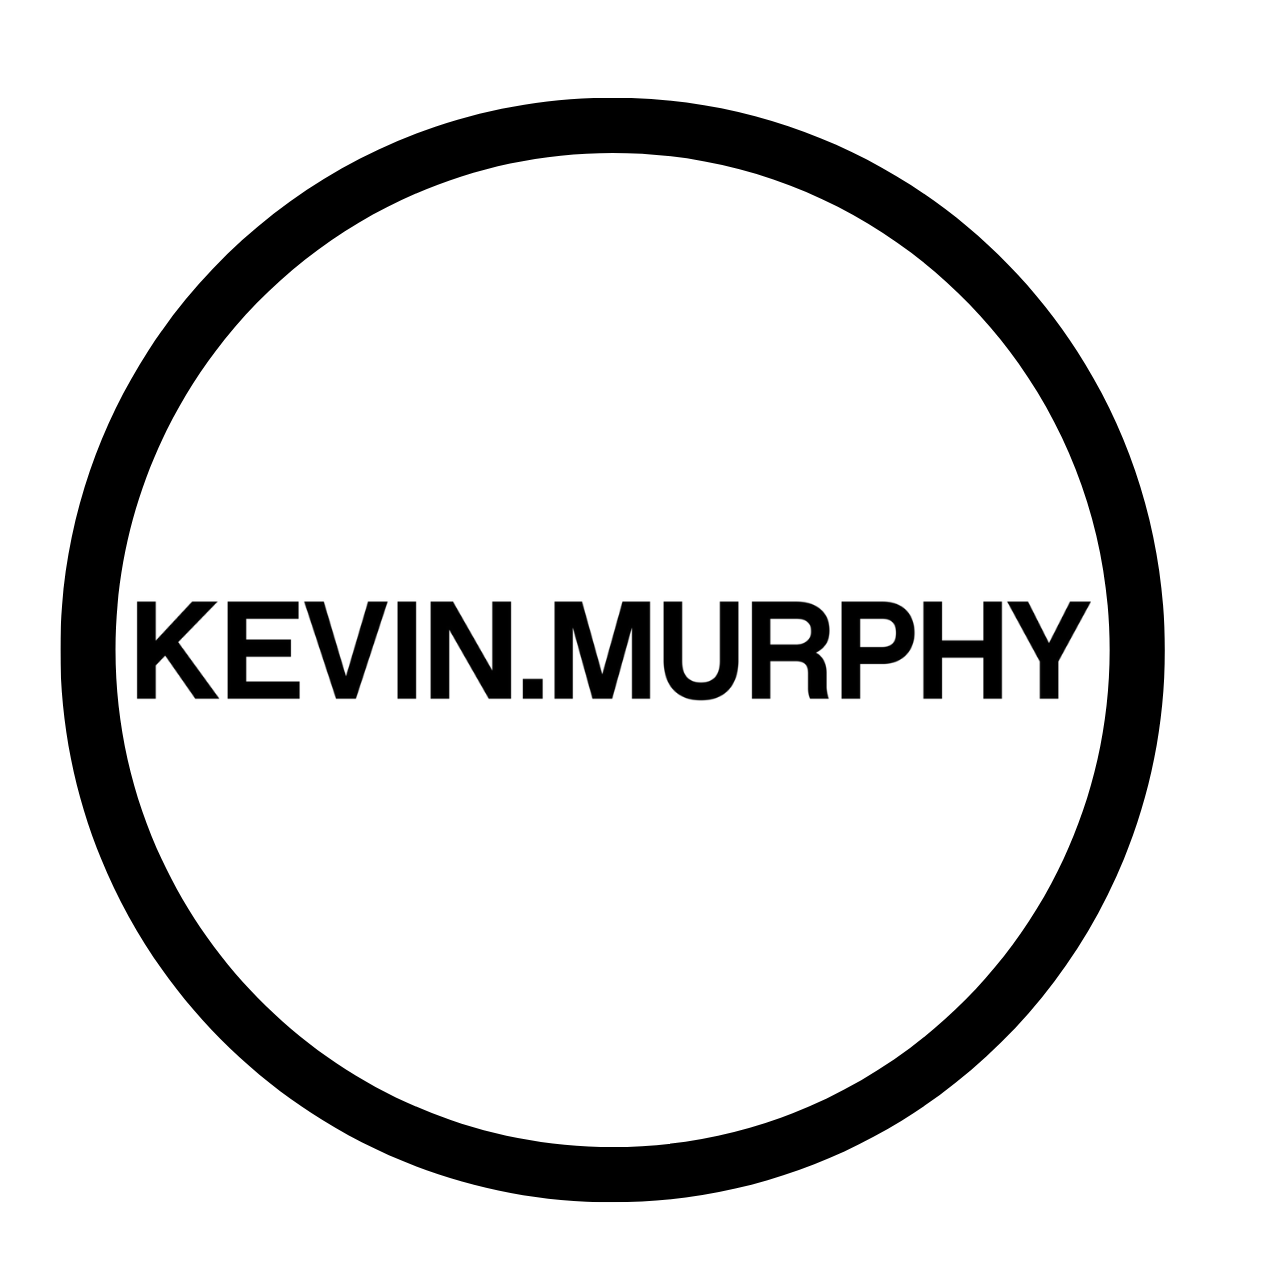 Elysium Hair Brisbane is a partner with Kevin Murphy